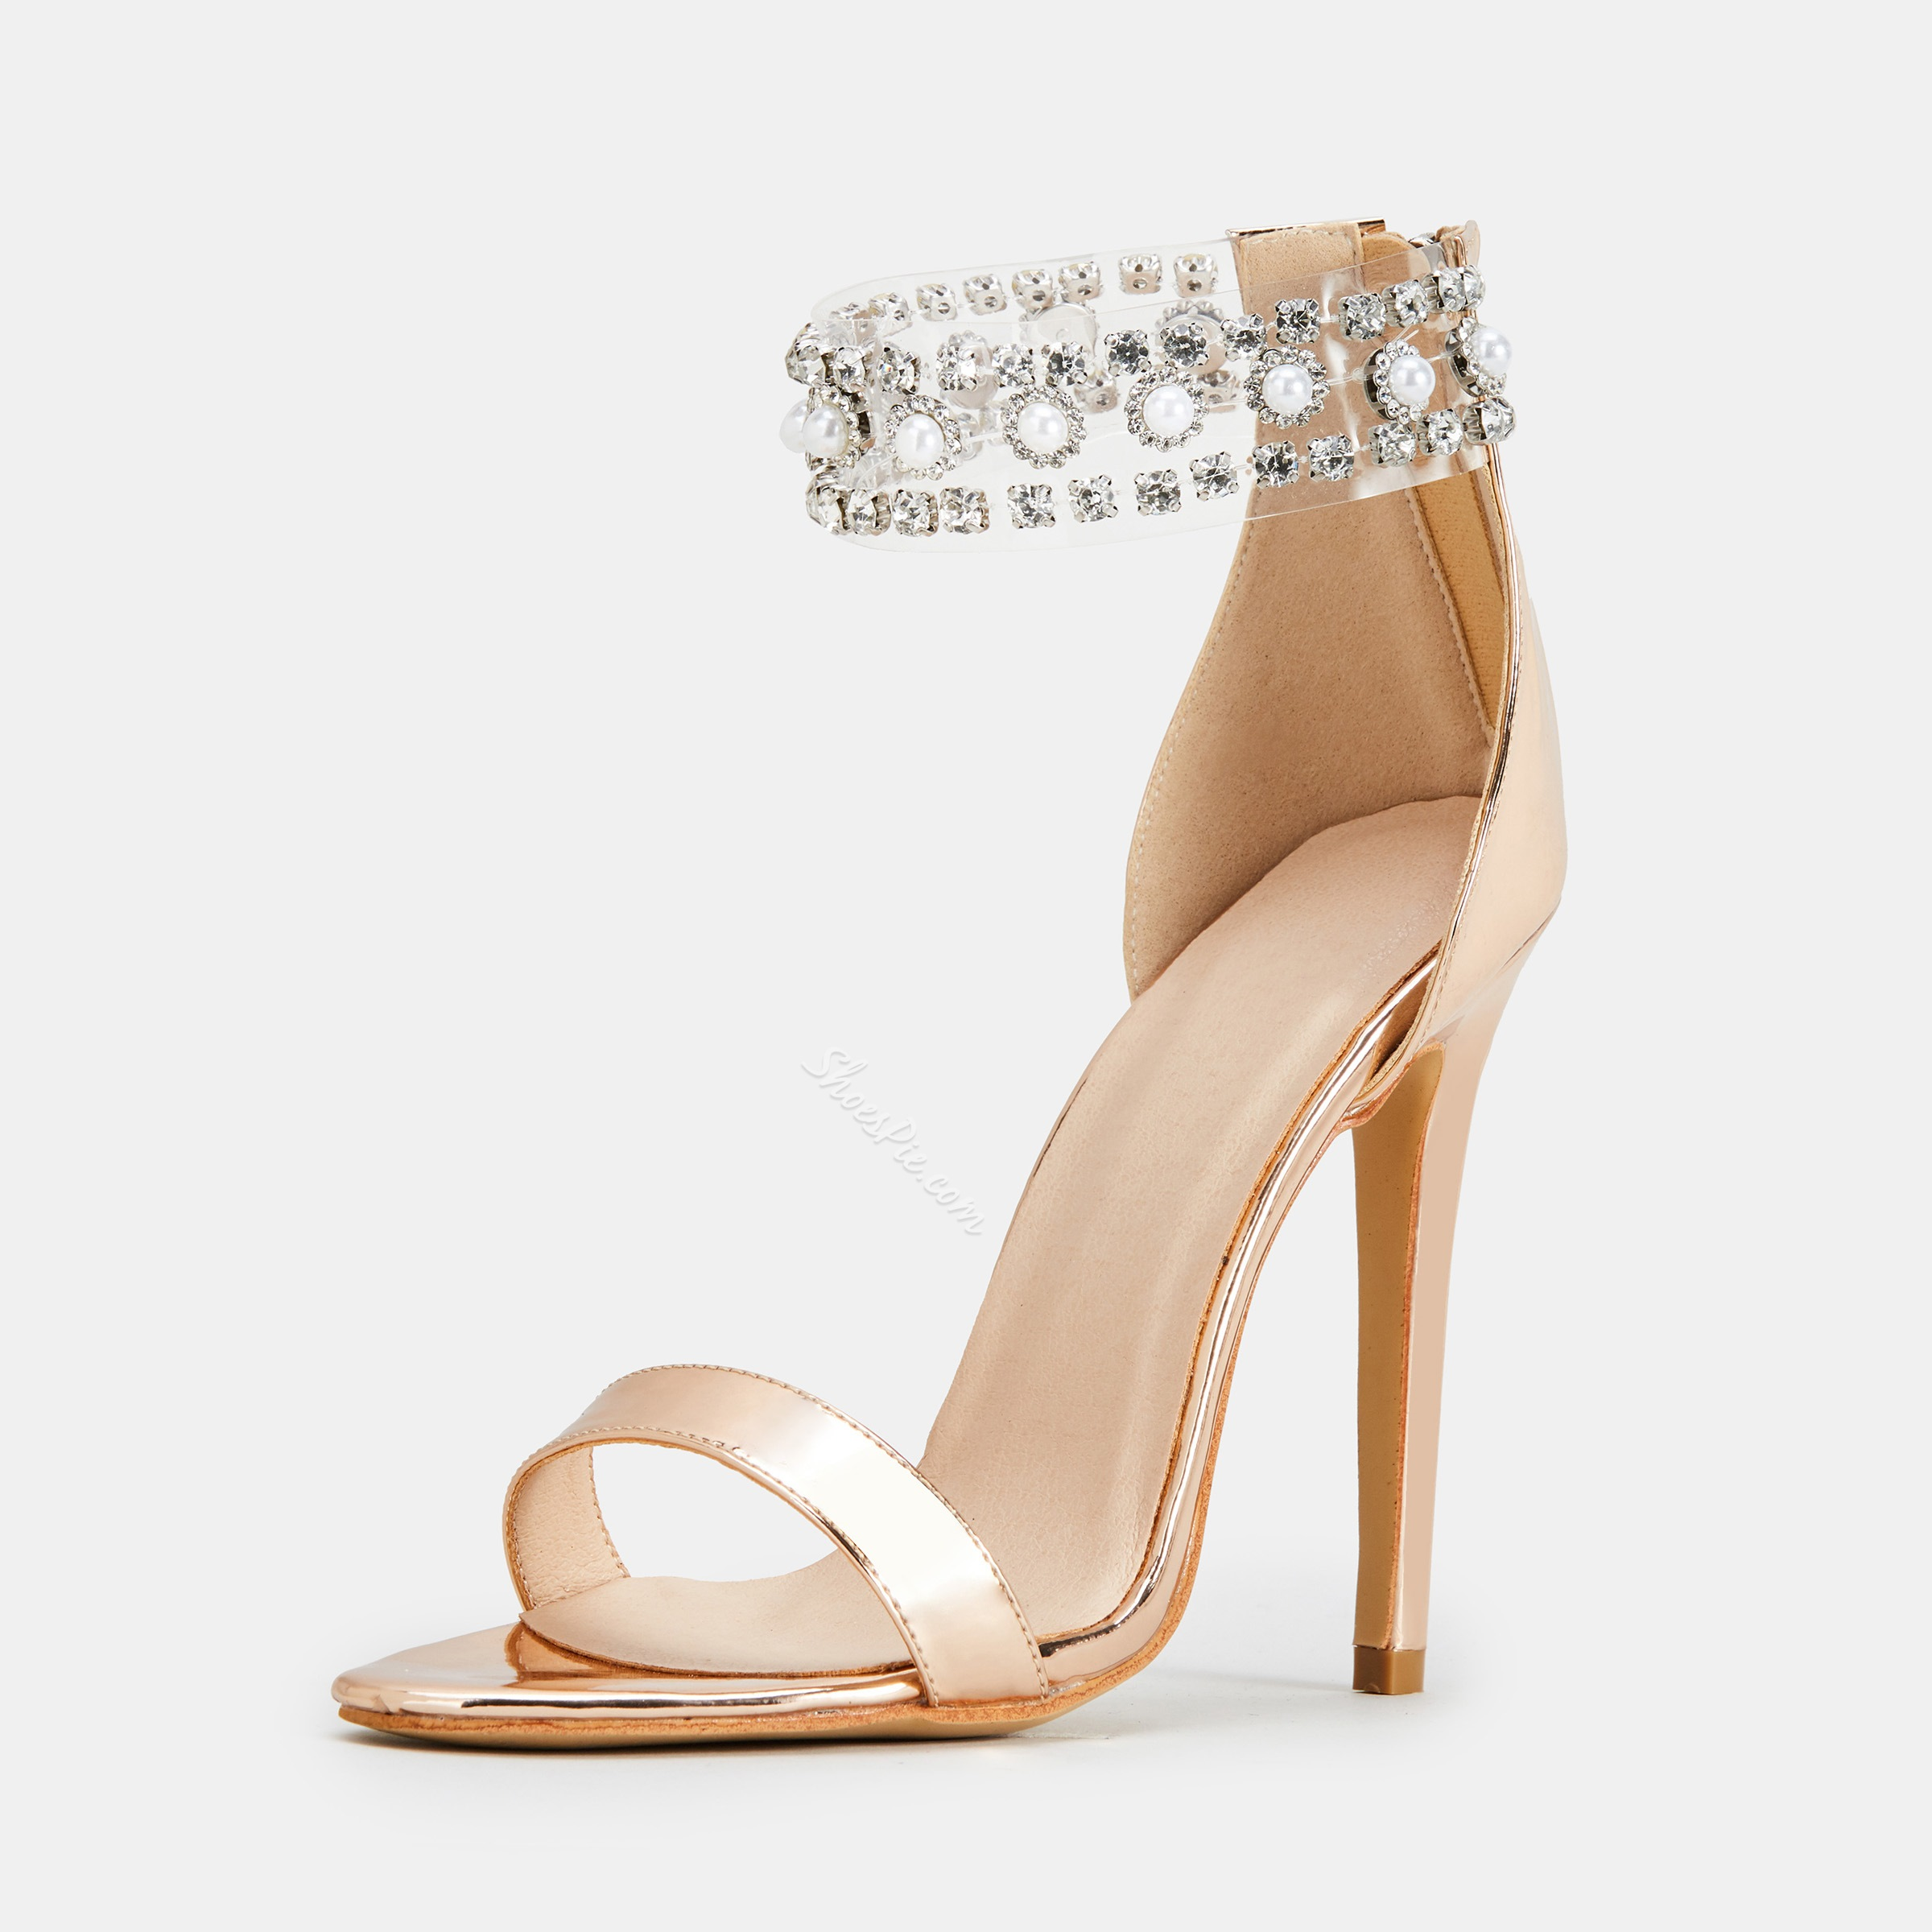 Brilliant Rhinestone Open Toe Zipper Stiletto Heel Sandals